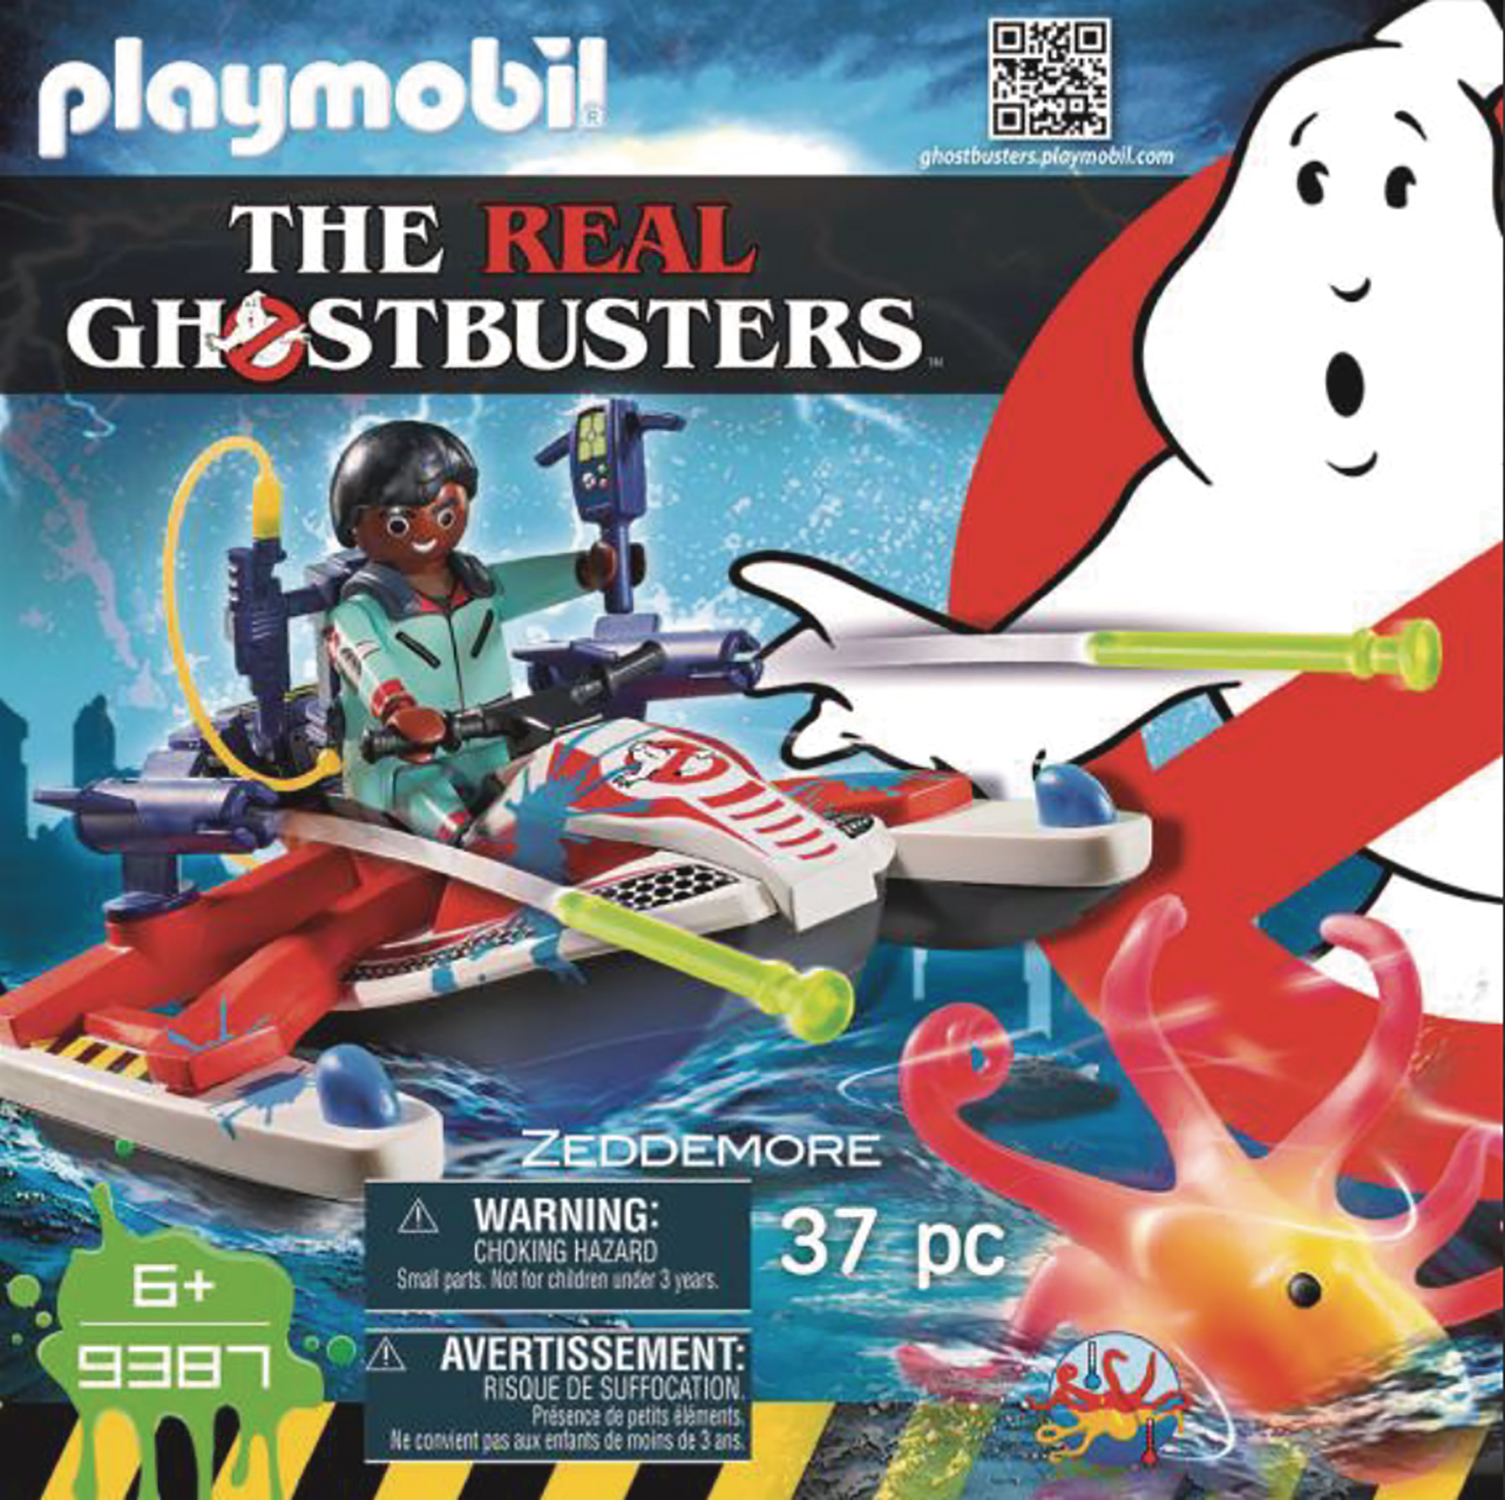 PLAYMOBIL REAL GHOSTBUSTERS ZEDDEMORE W/AQUA SCOOTER AF SET